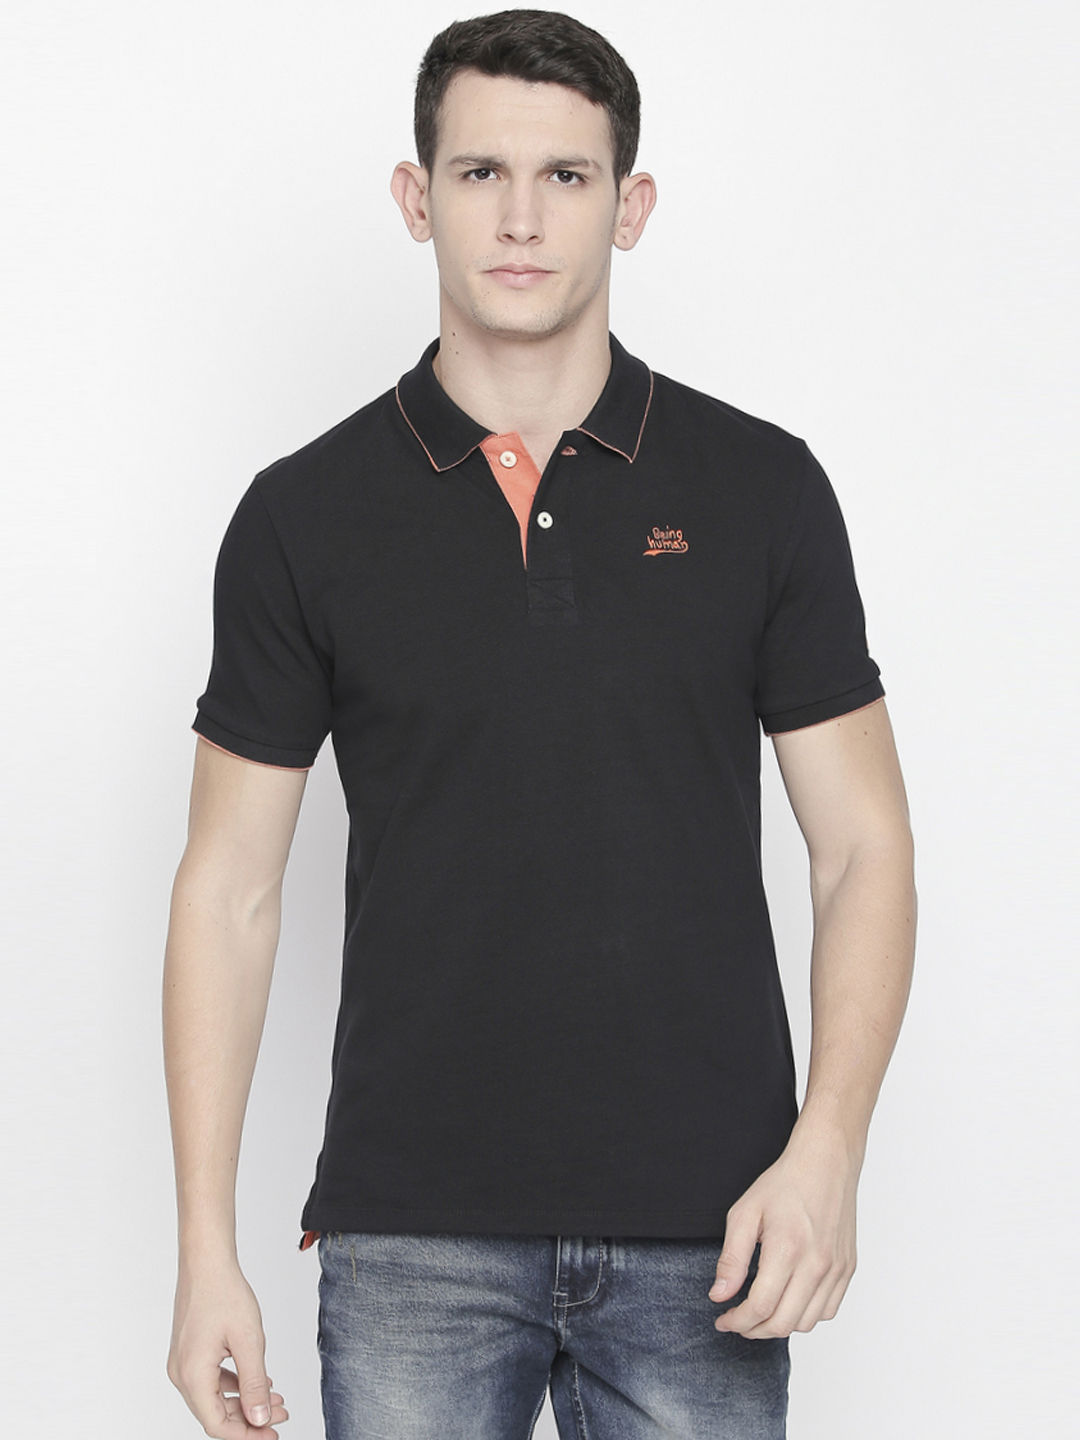 BLACK PRINTED POLO T-SHIRT